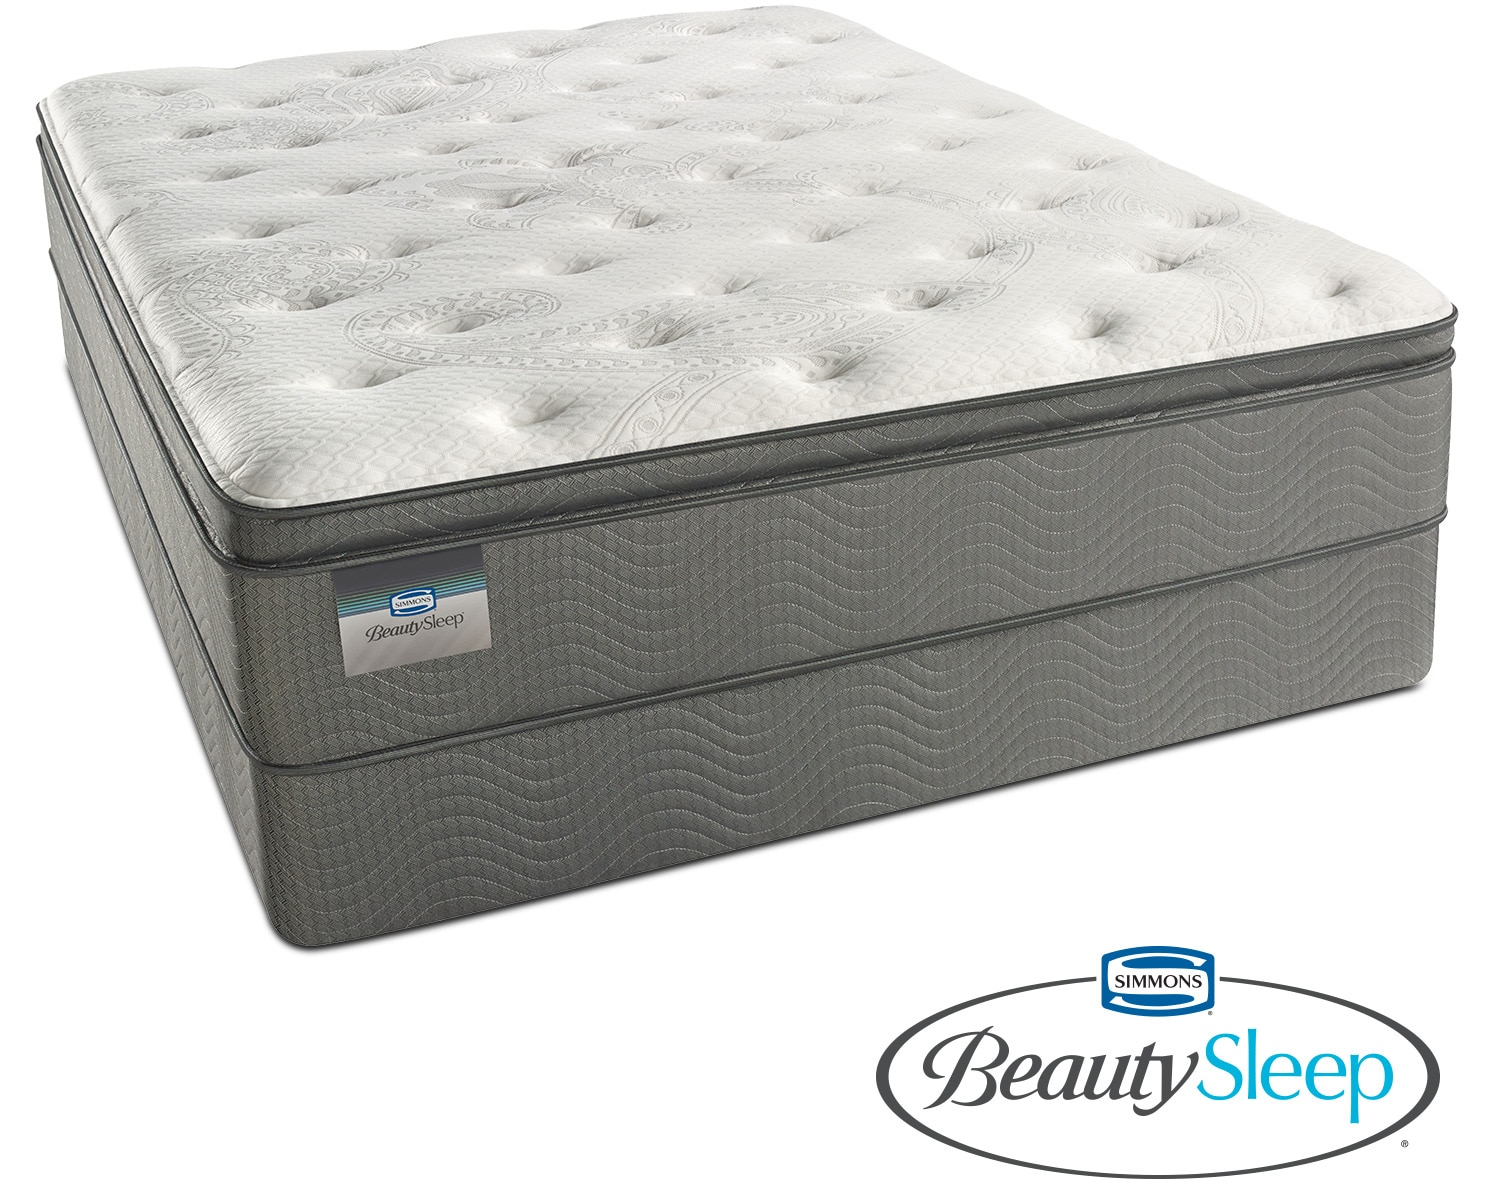 Mattresses and Bedding - Stags Leap Luxury Firm Pillowtop Mattress